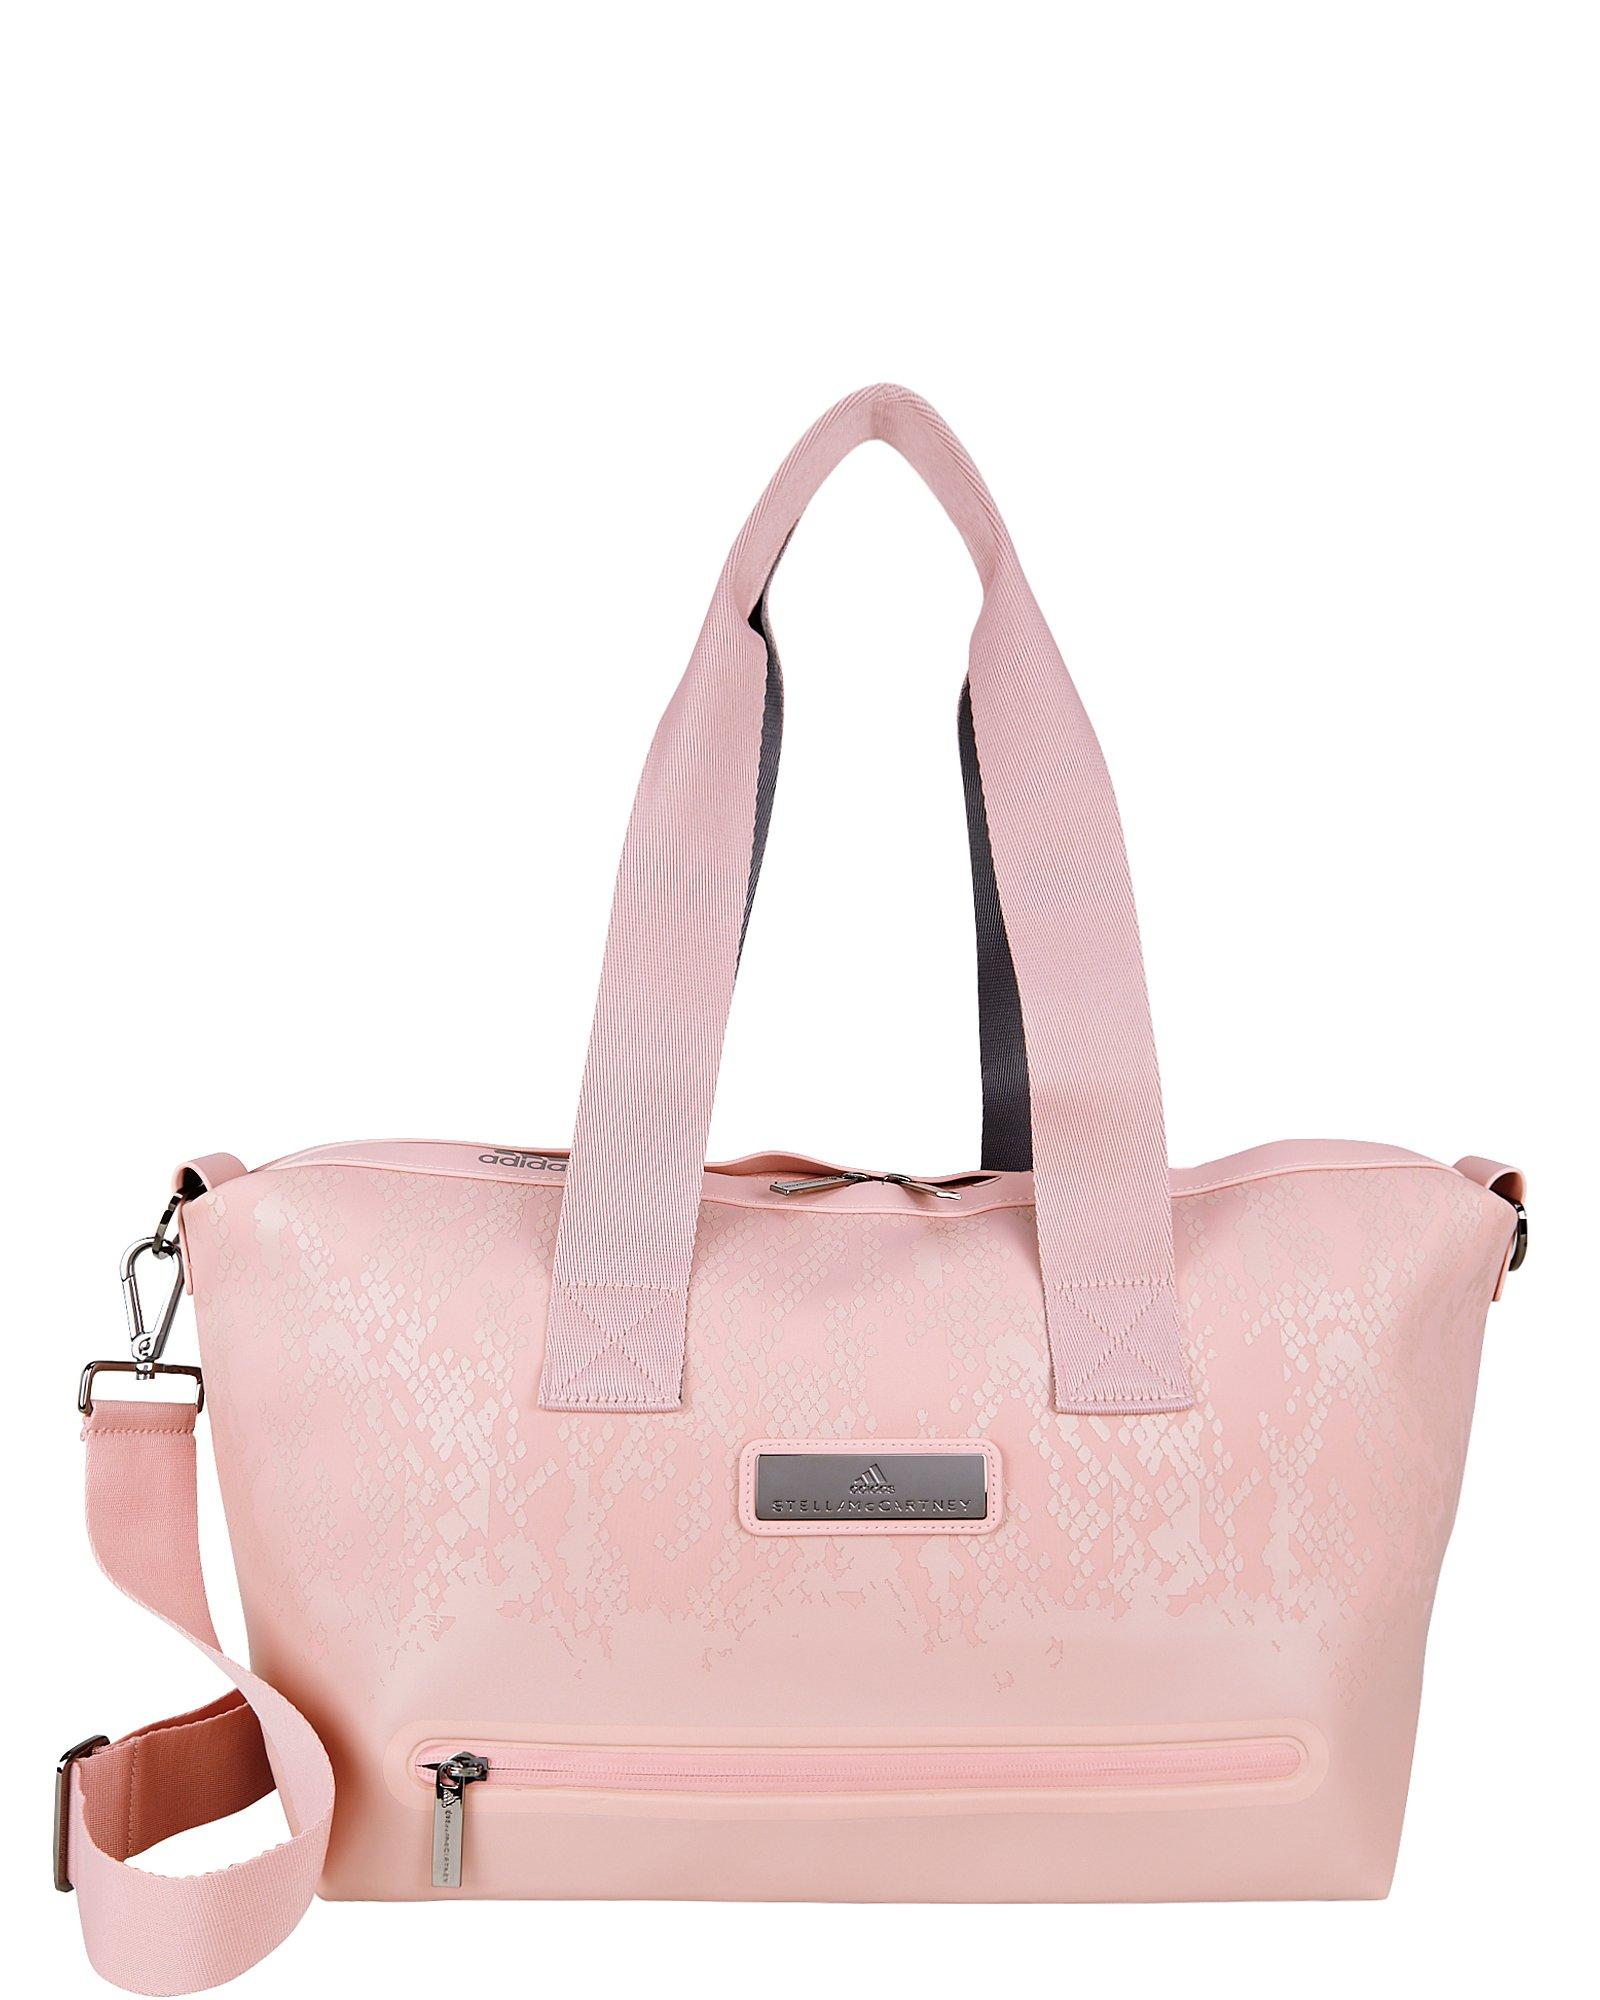 Lyst - adidas By Stella McCartney Small Studio Pink Bag in Pink 4e6eaa6f6e134